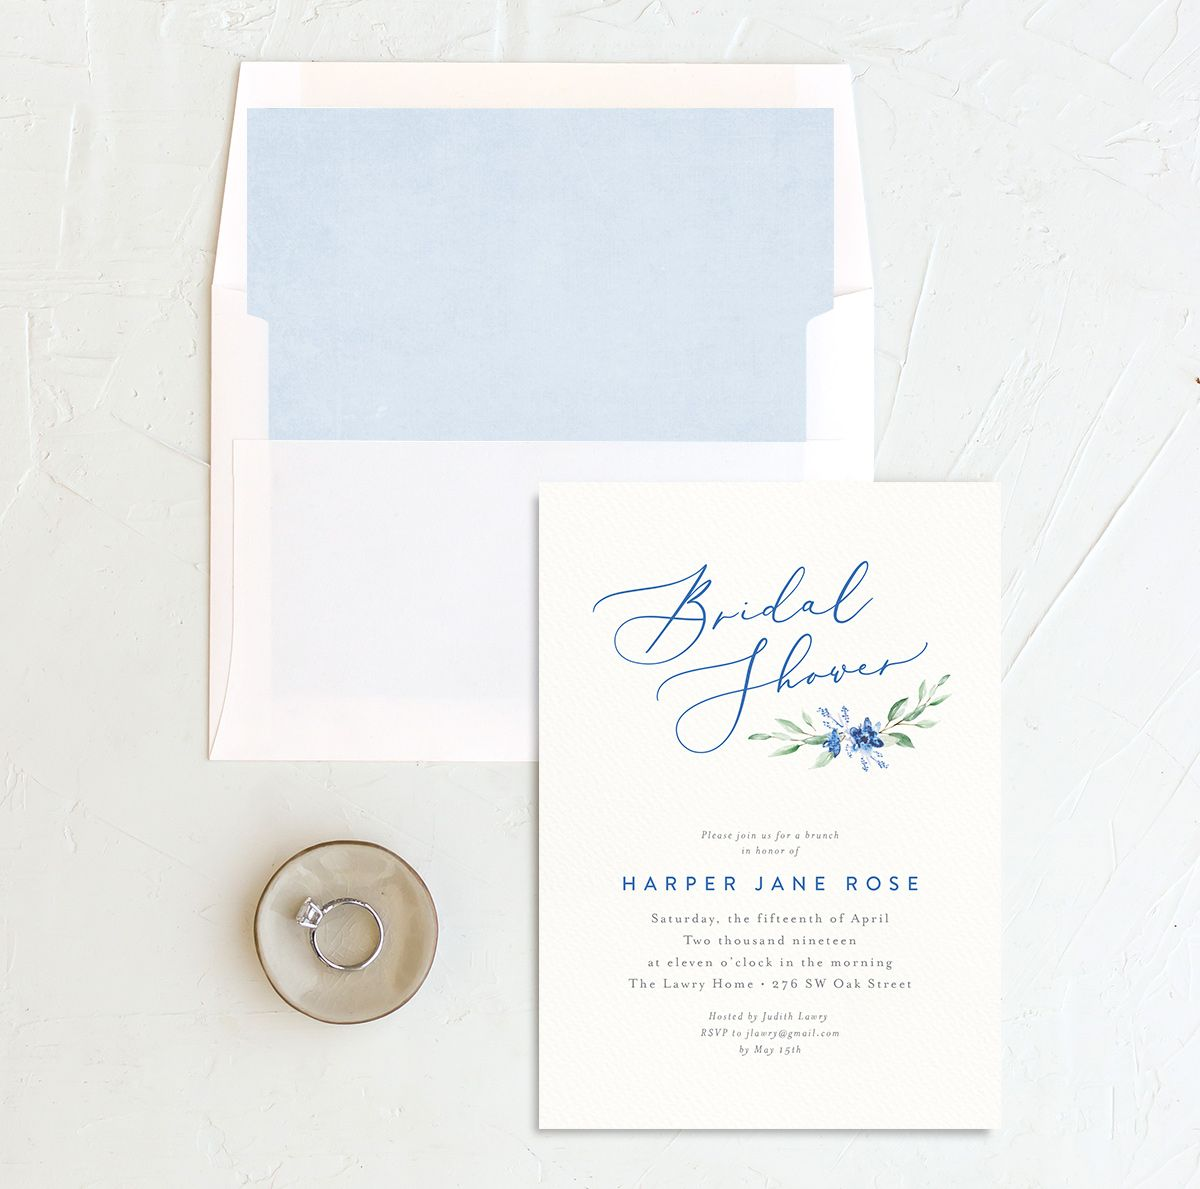 watercolor crest bridal shower invites in blue with envelope lienrs